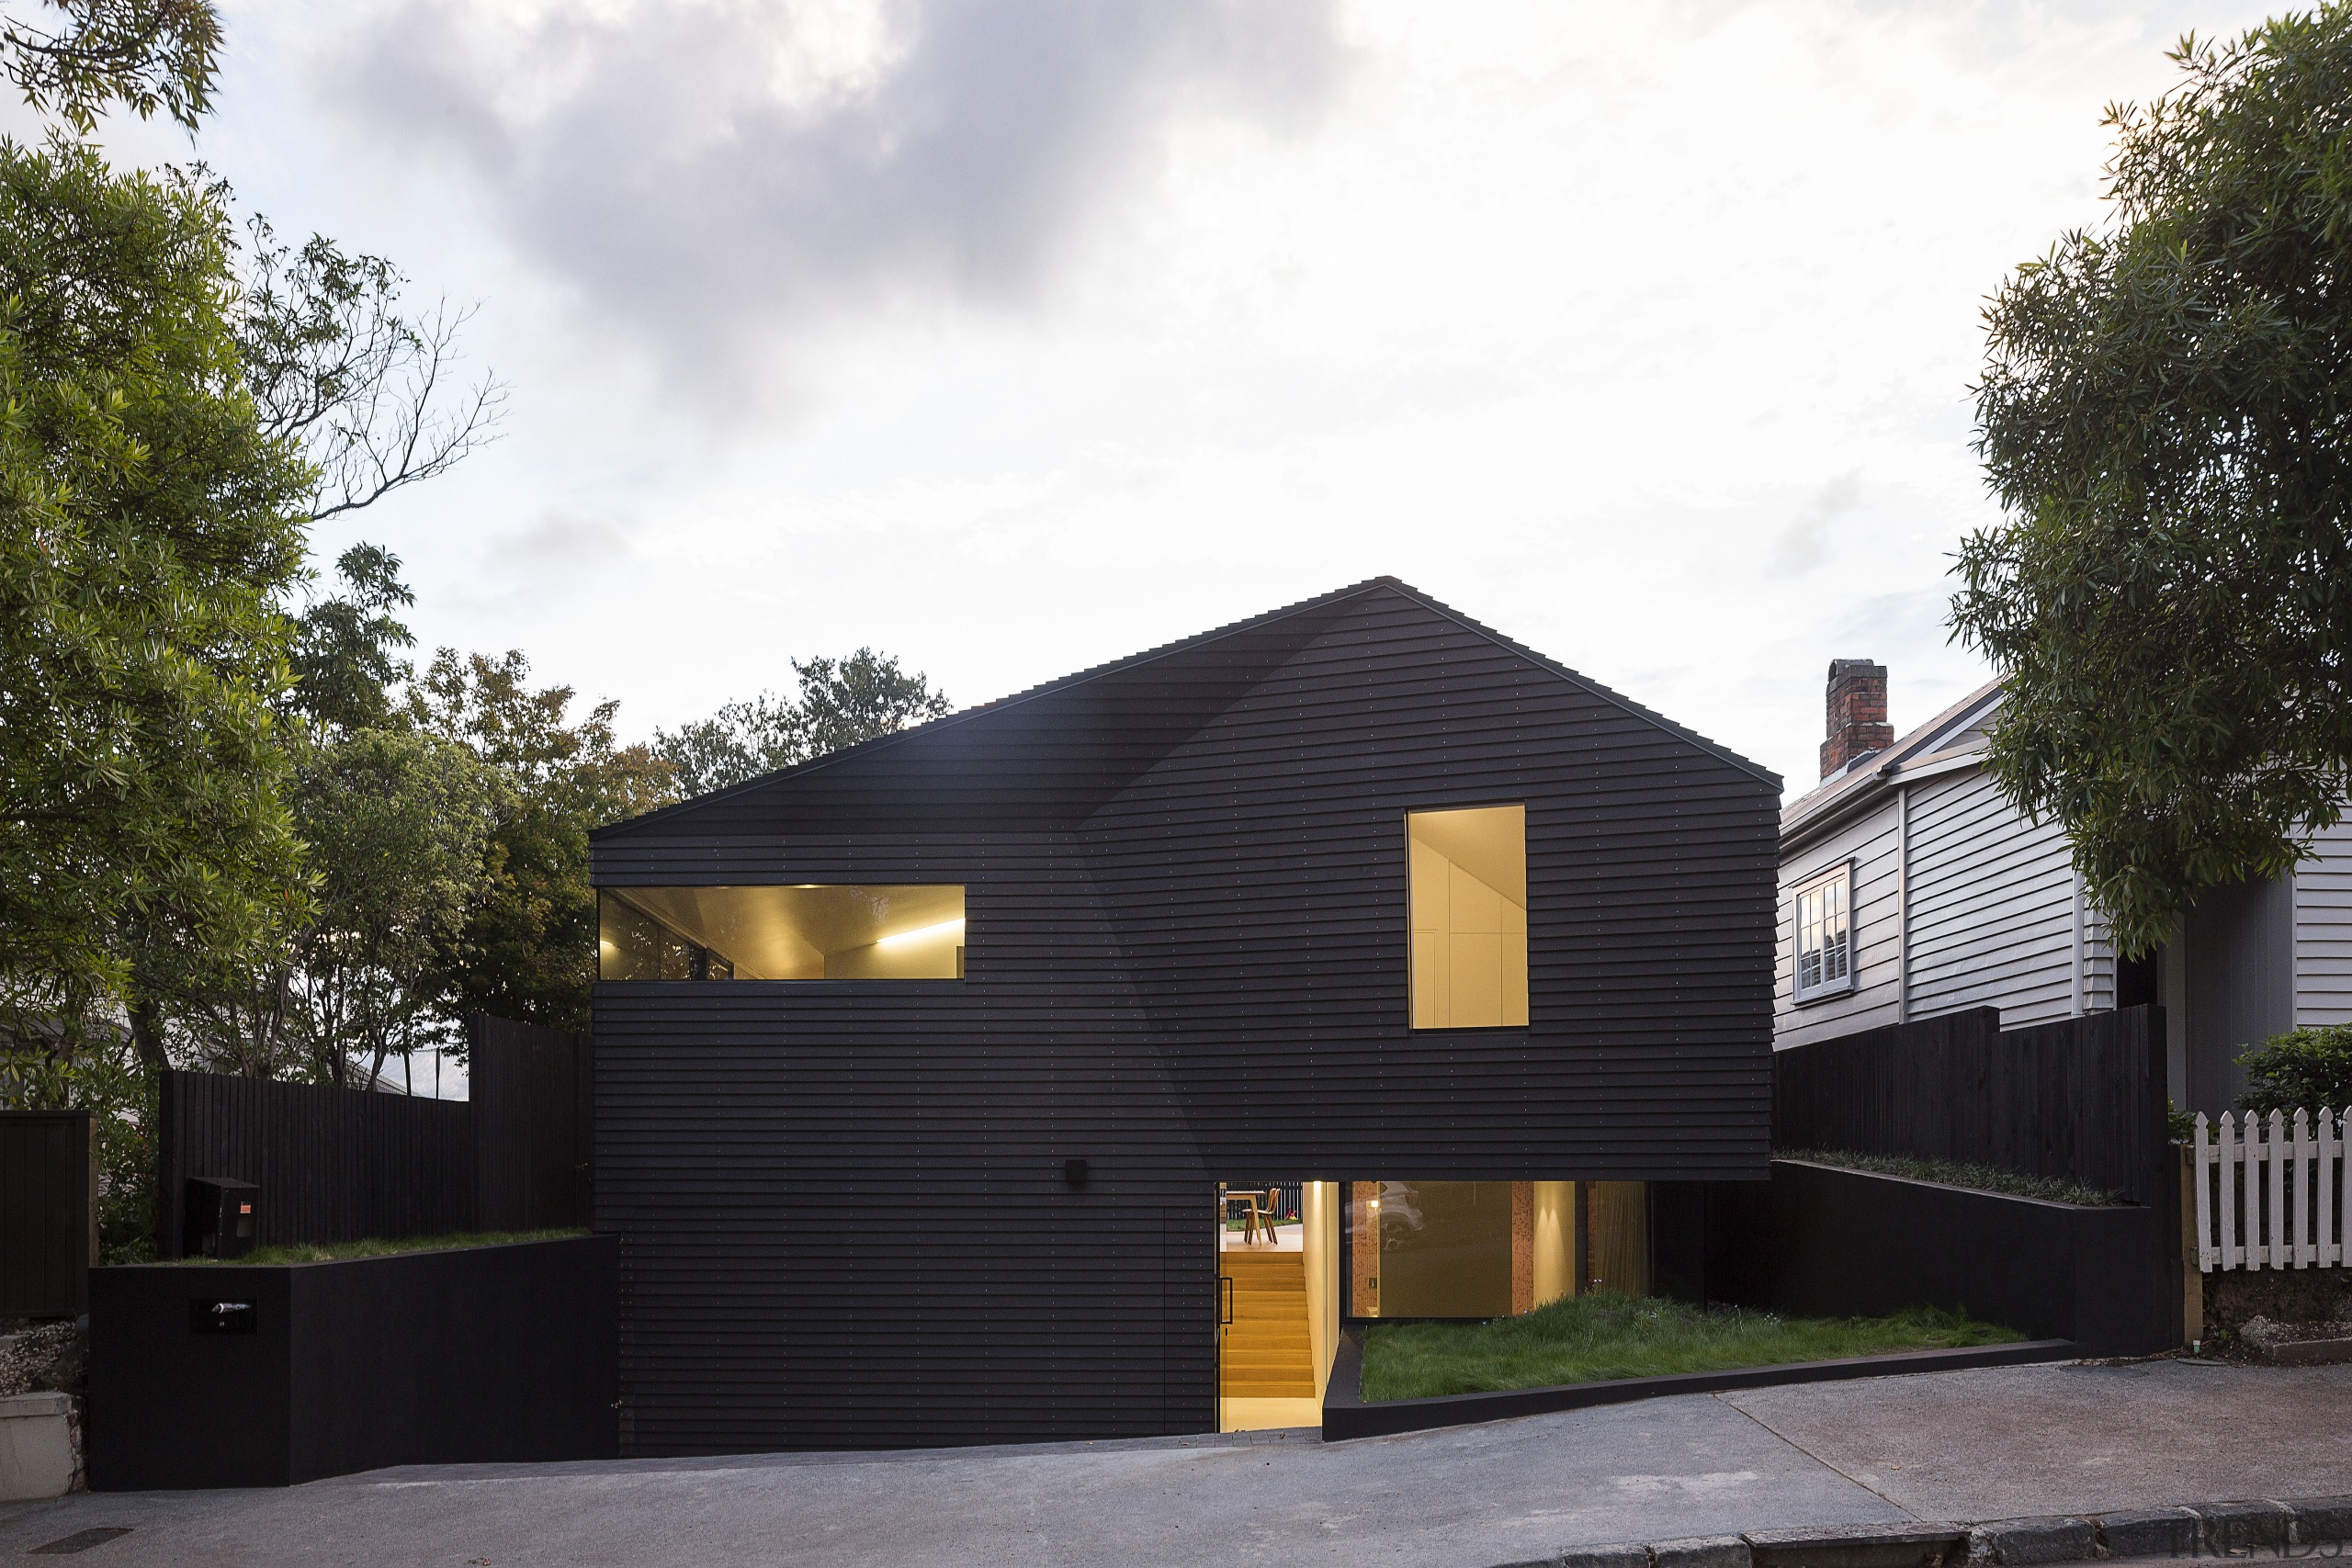 Black walls and angled planes create a distinctive architecture, building, cottage, facade, home, house, property, real estate, residential area, siding, black, white